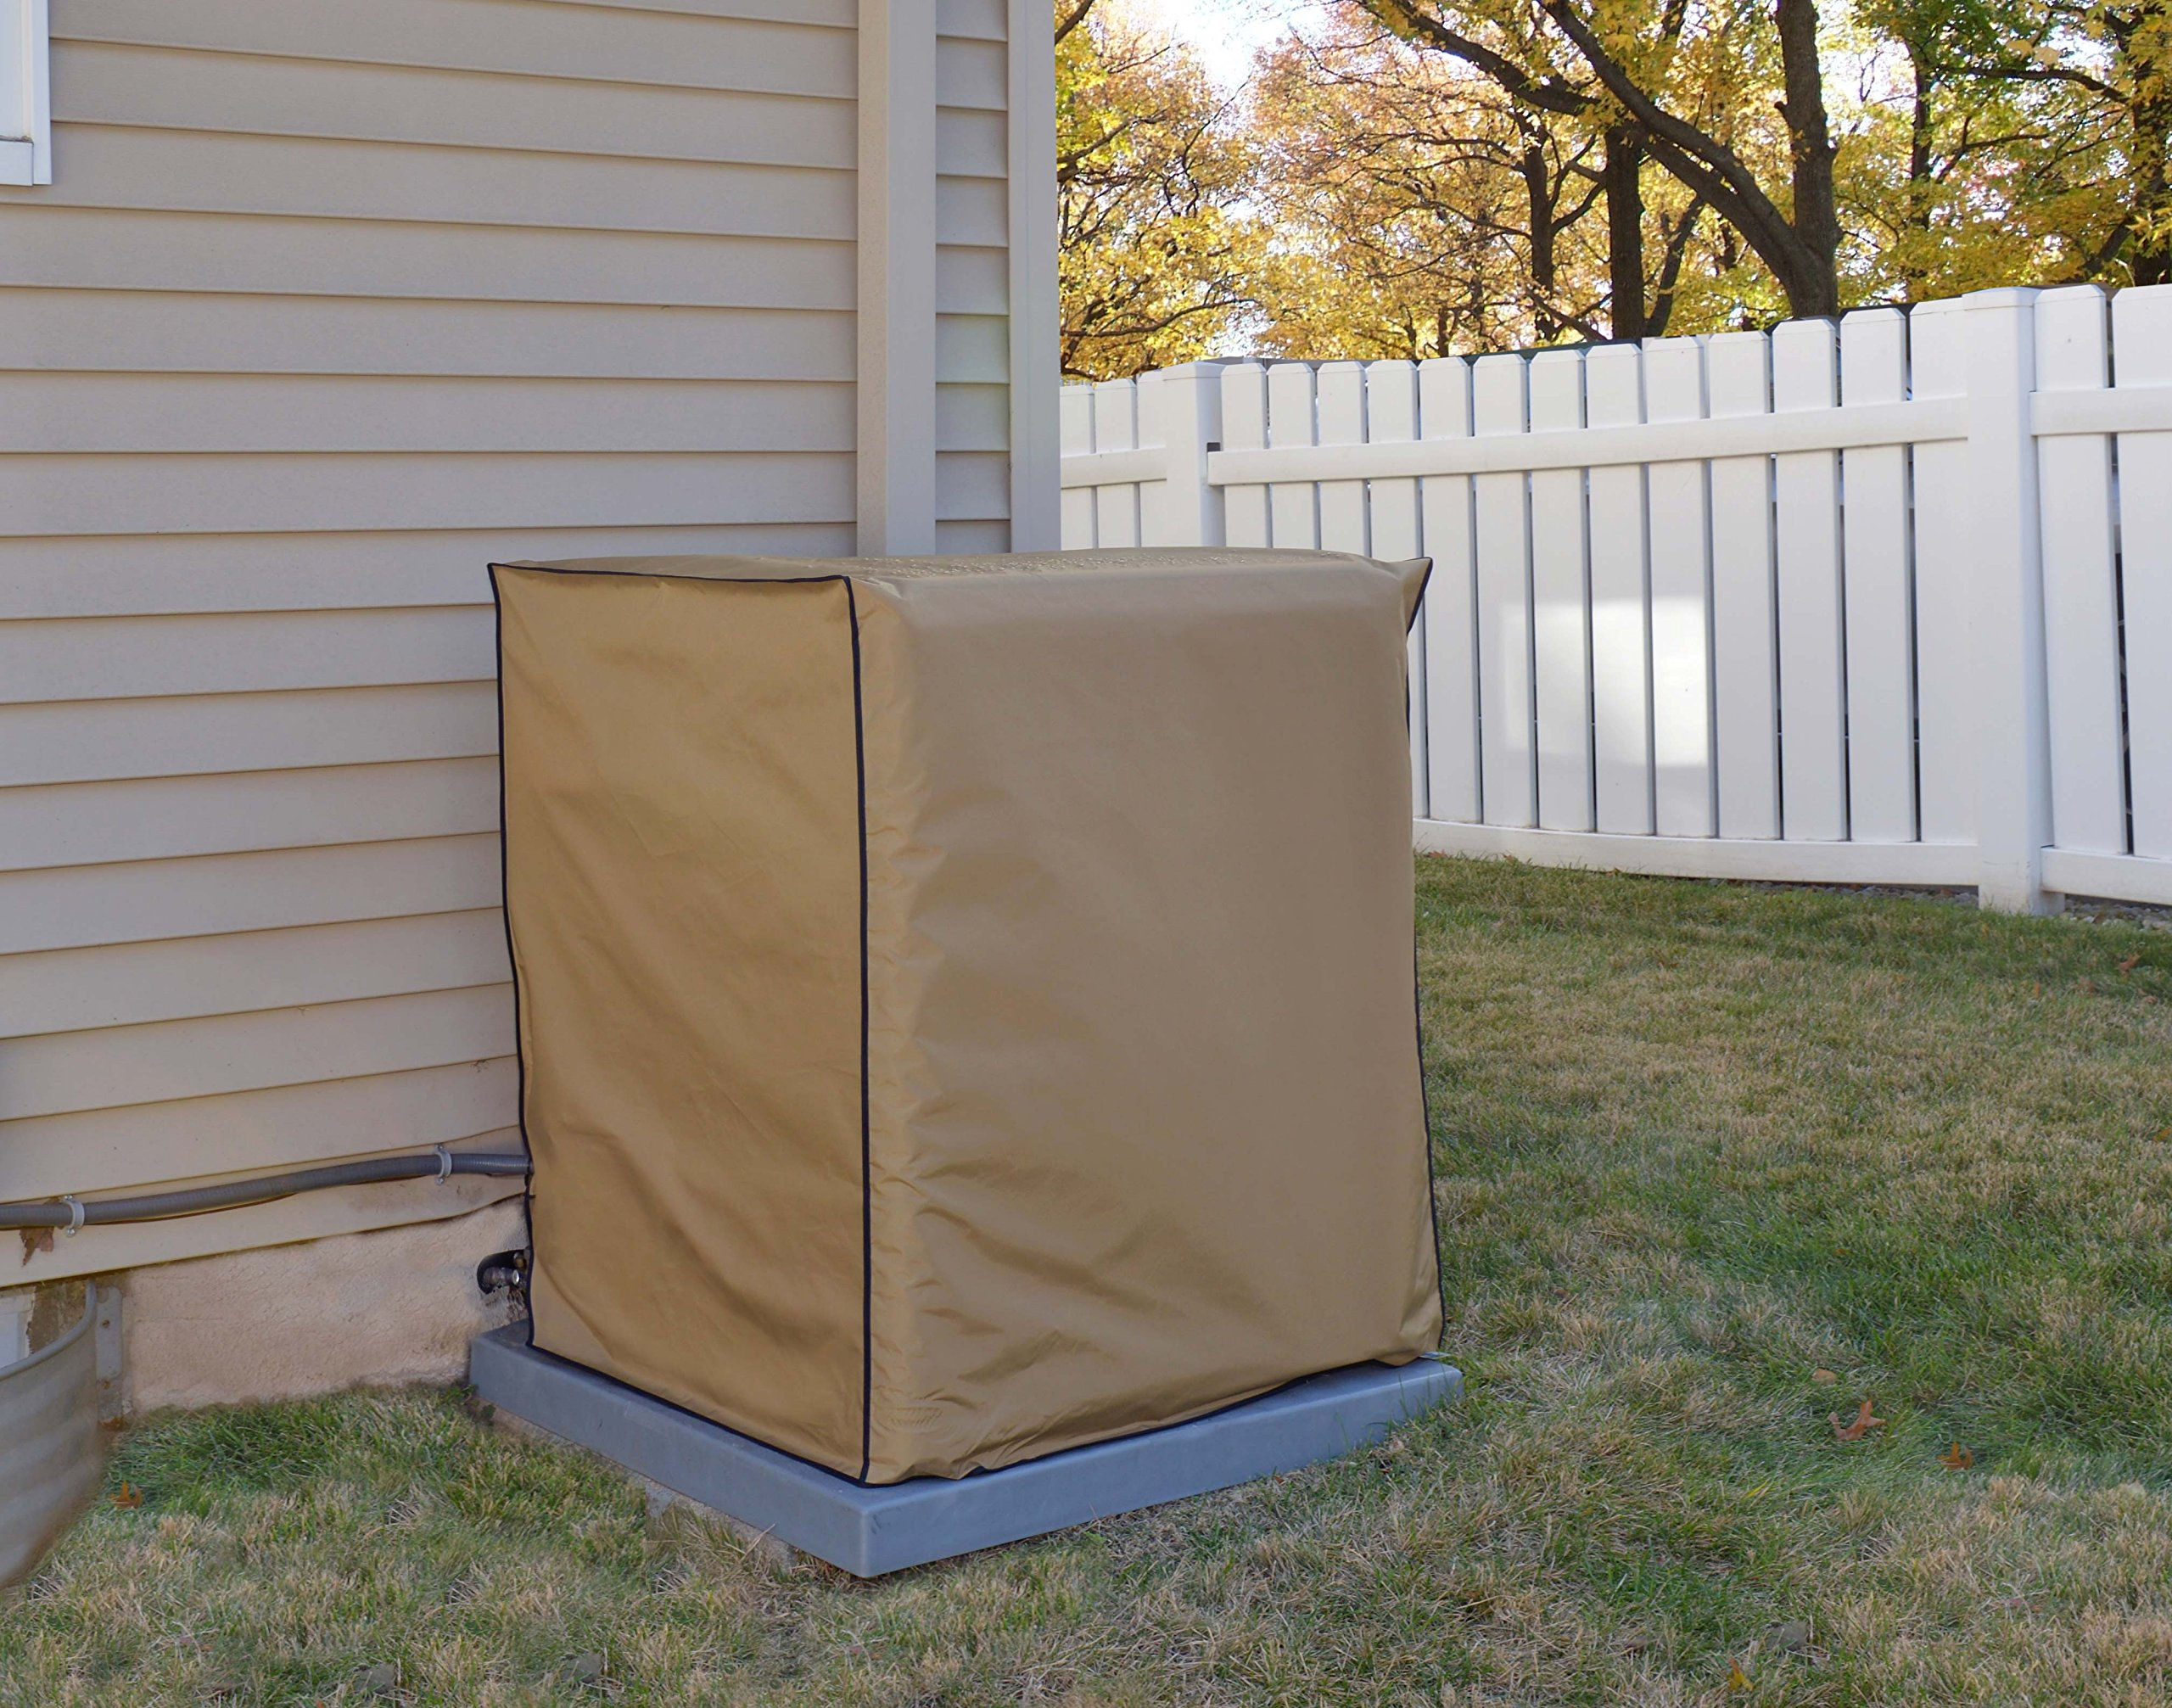 Air Conditioning System Unit GOODMAN MODEL GSX160241 Waterproof Tan Nylon Cover By Comp Bind Technology Dimensions 29''W x 29''D x 32''H